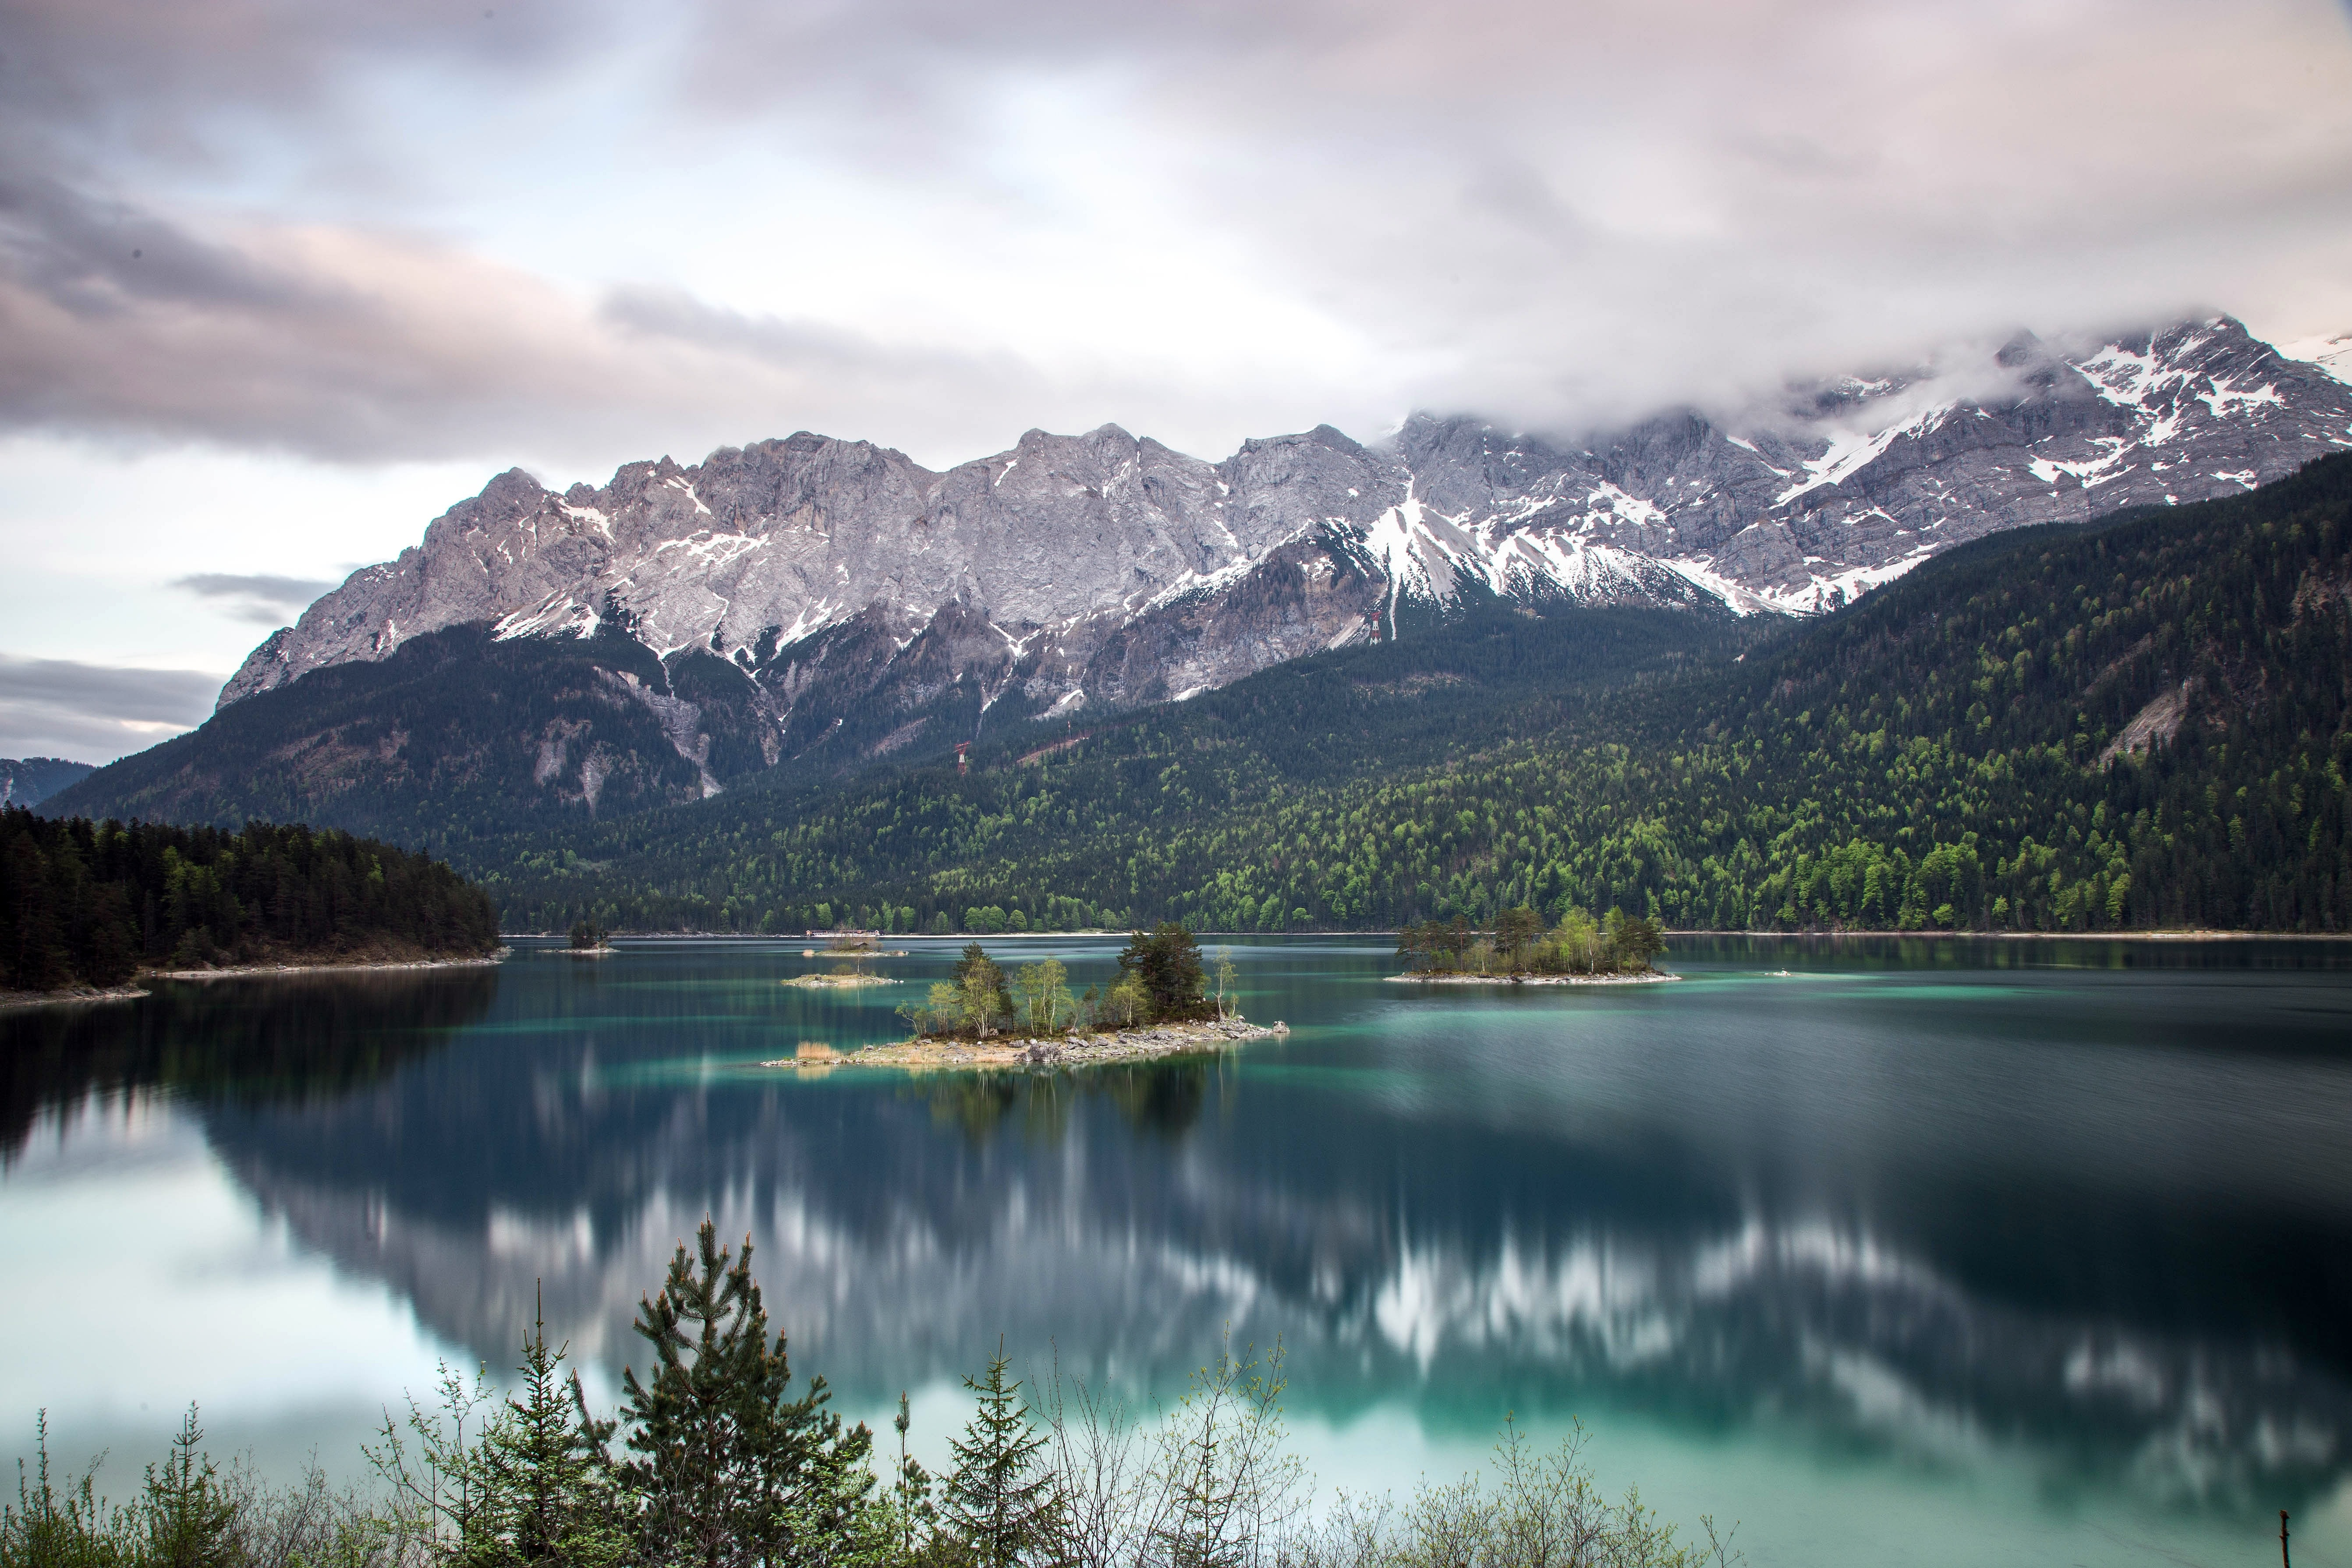 The emerald-green surface of the Eibsee lake in the Alps